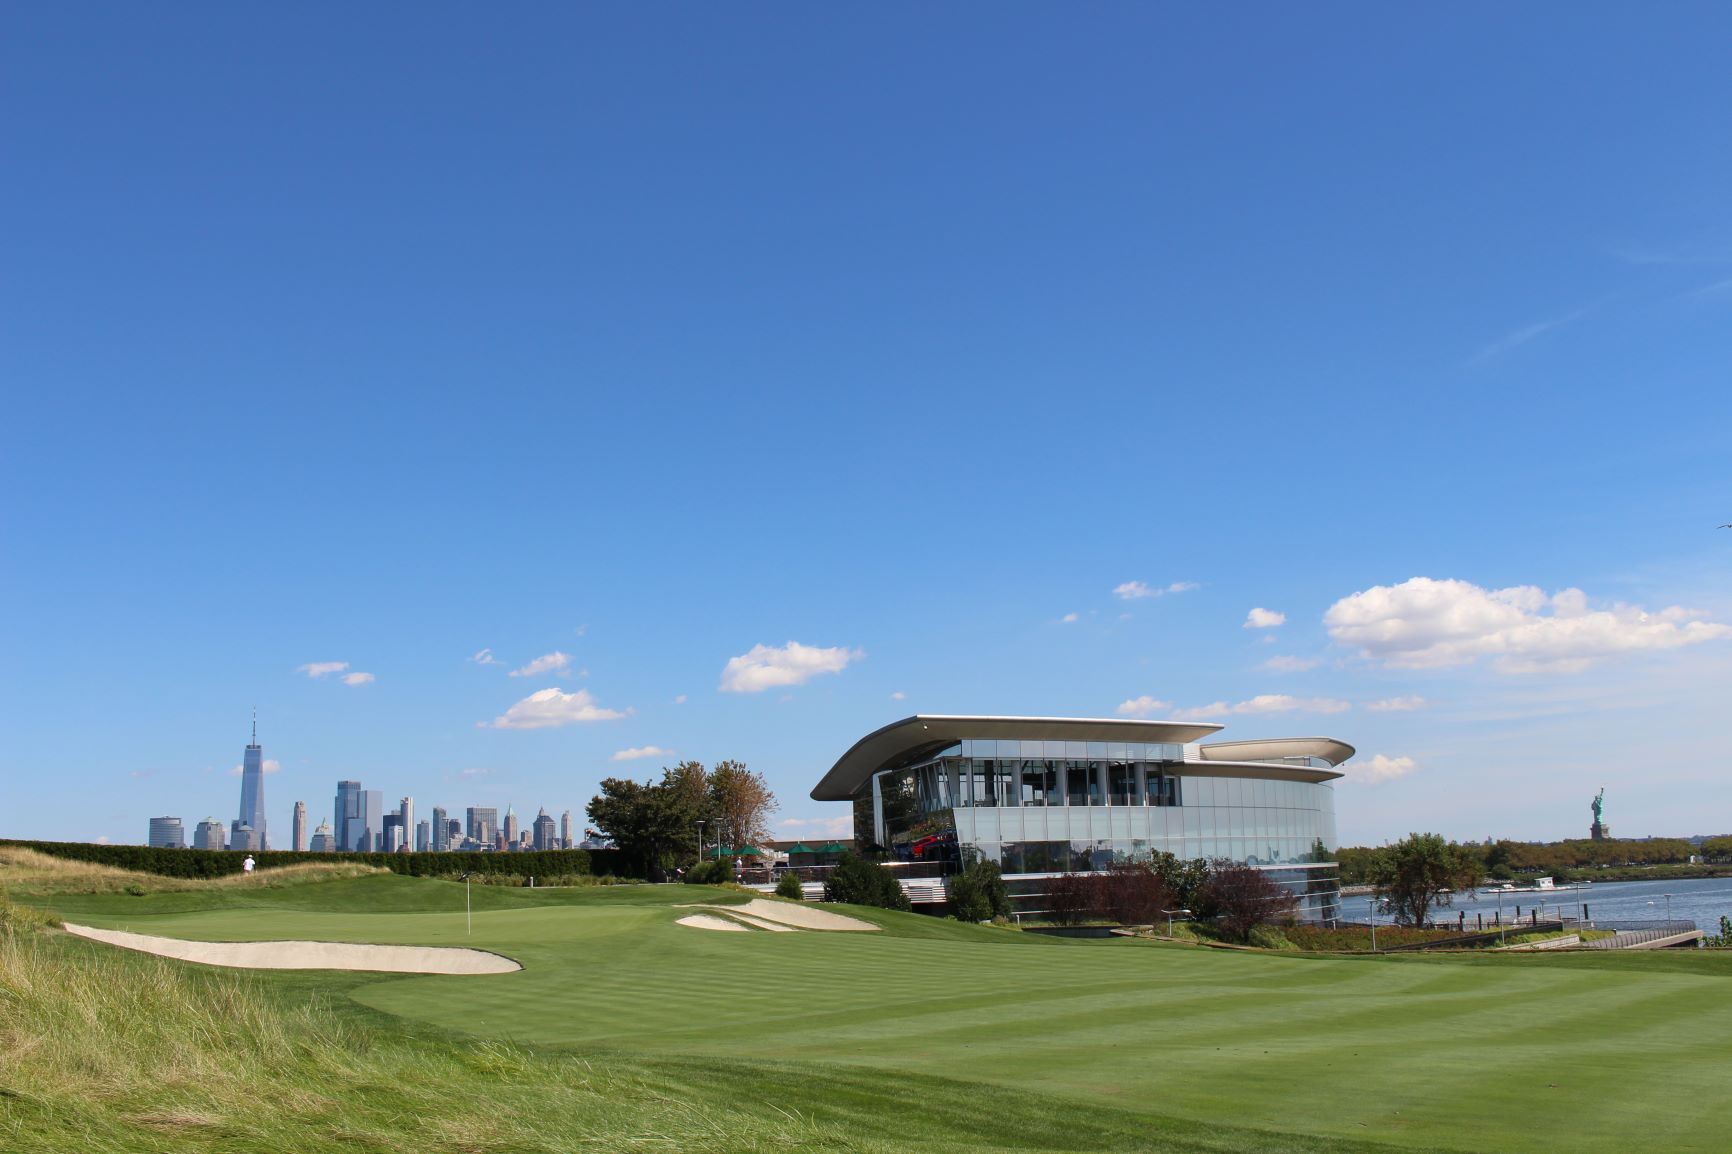 Membership at Liberty National Golf Club